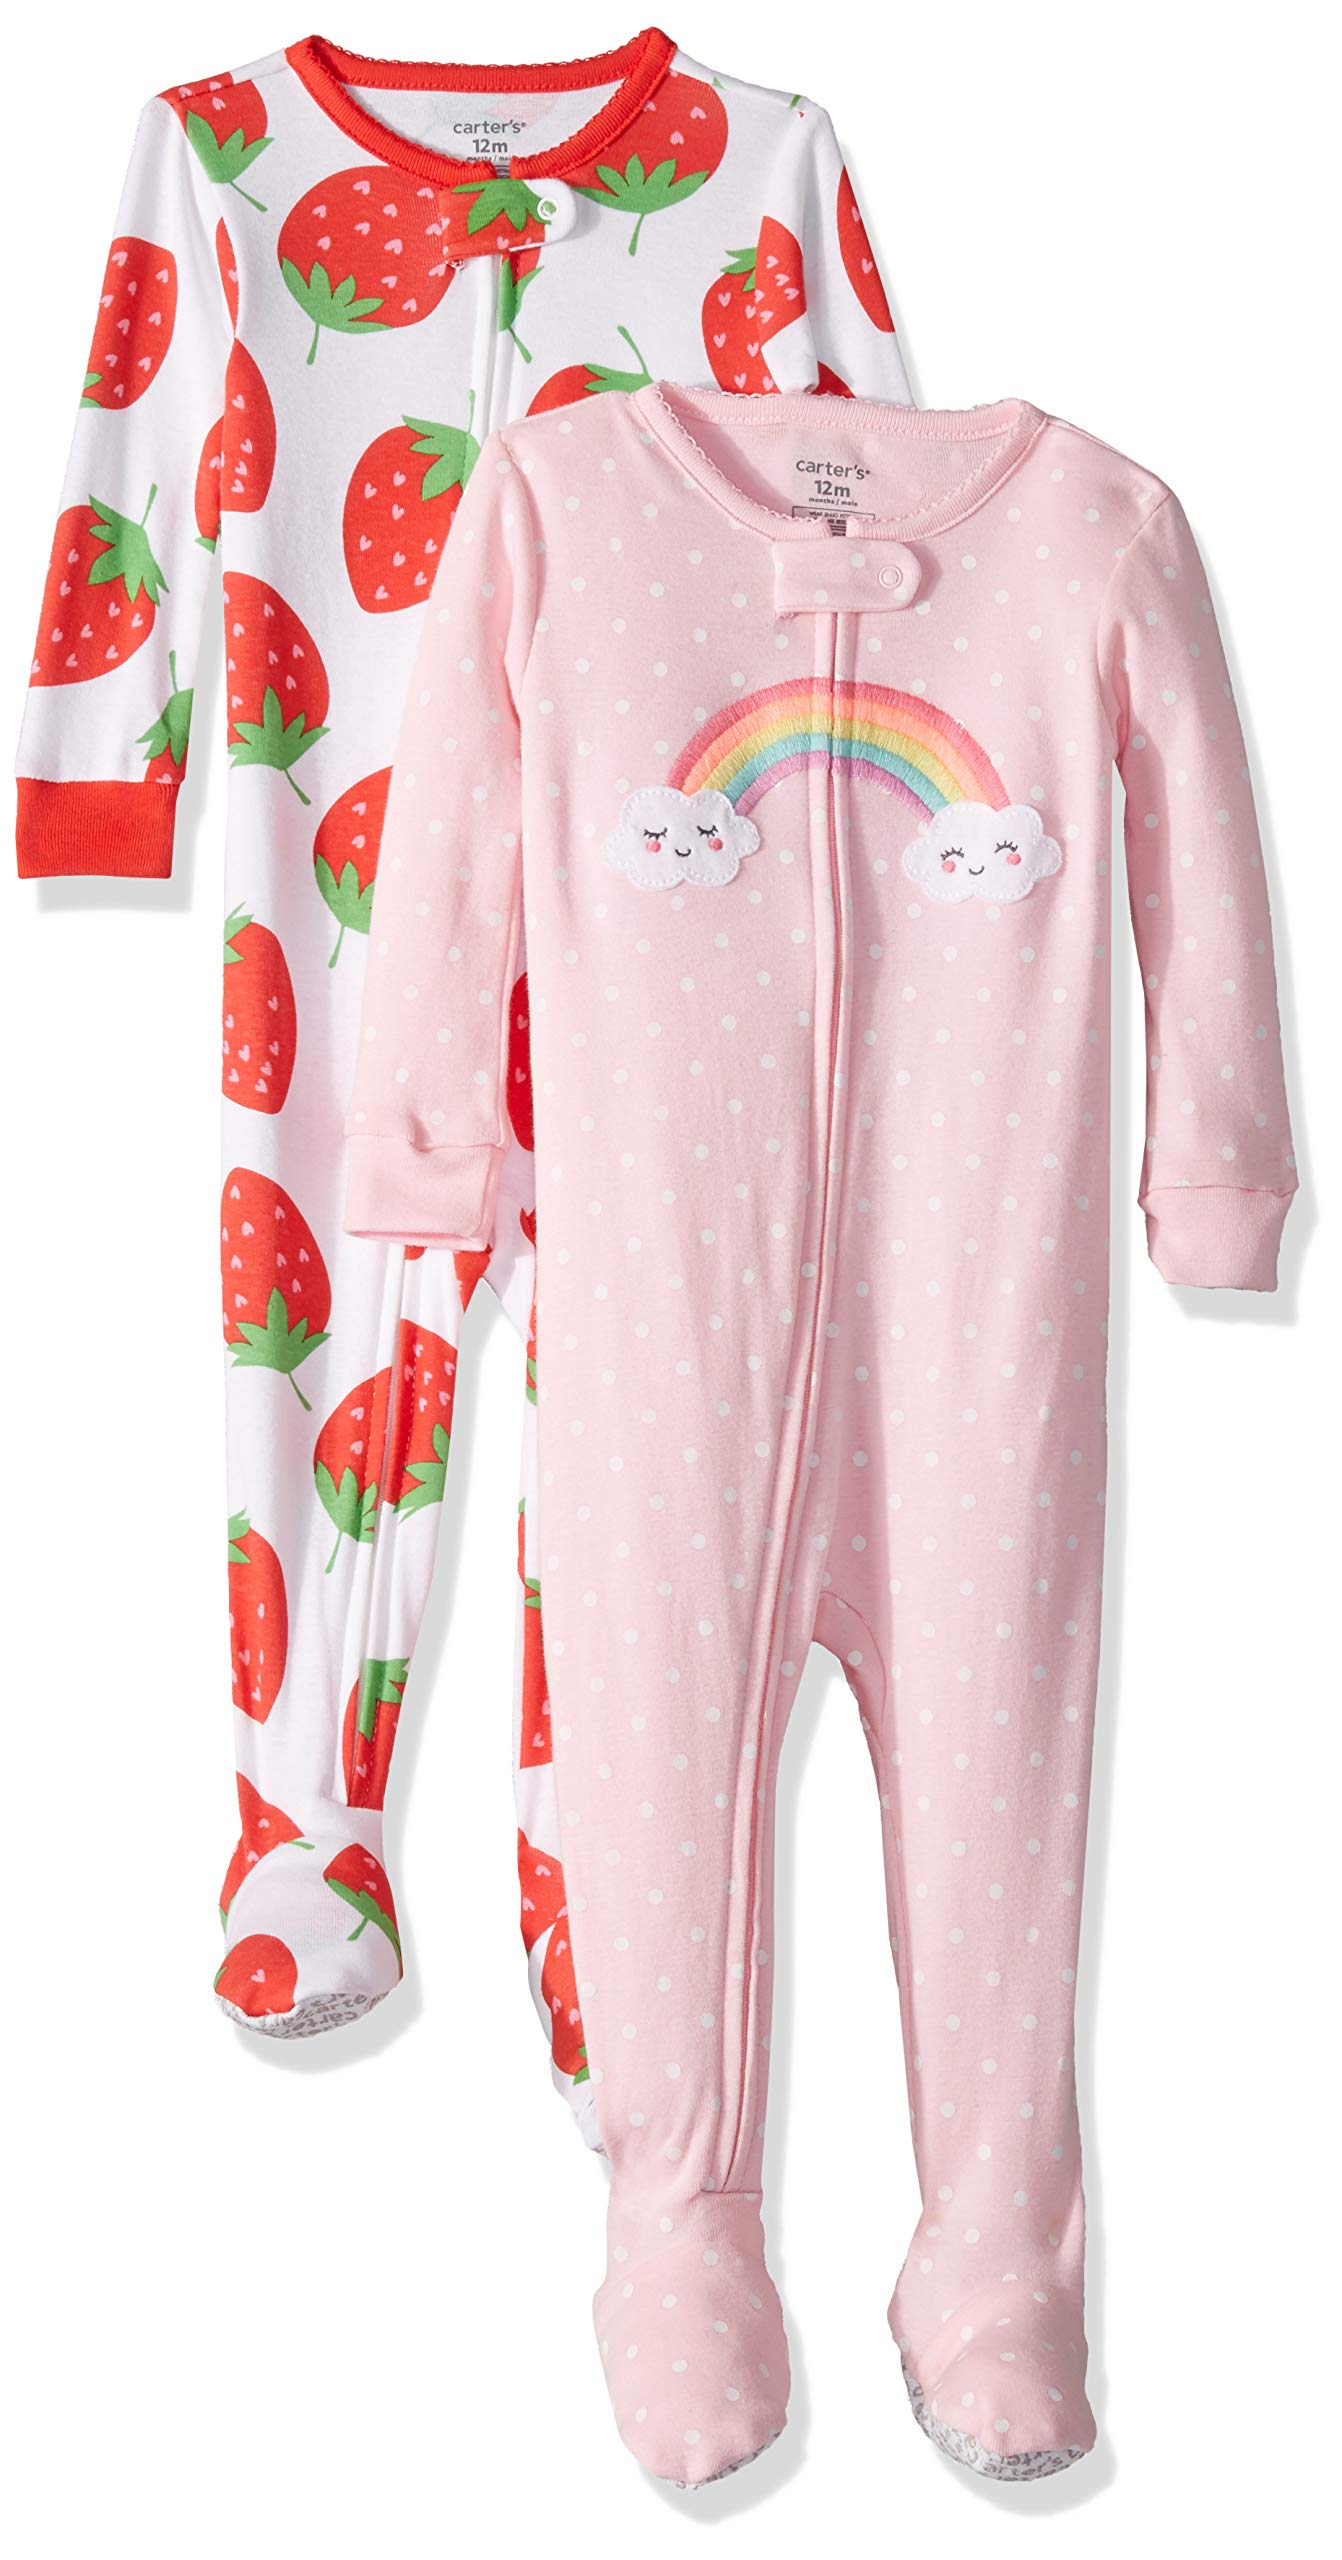 Carter's Baby Girls 2-Pack Cotton Footed Pajamas, Strawberry/Rainbow, 18 Months by Carter's